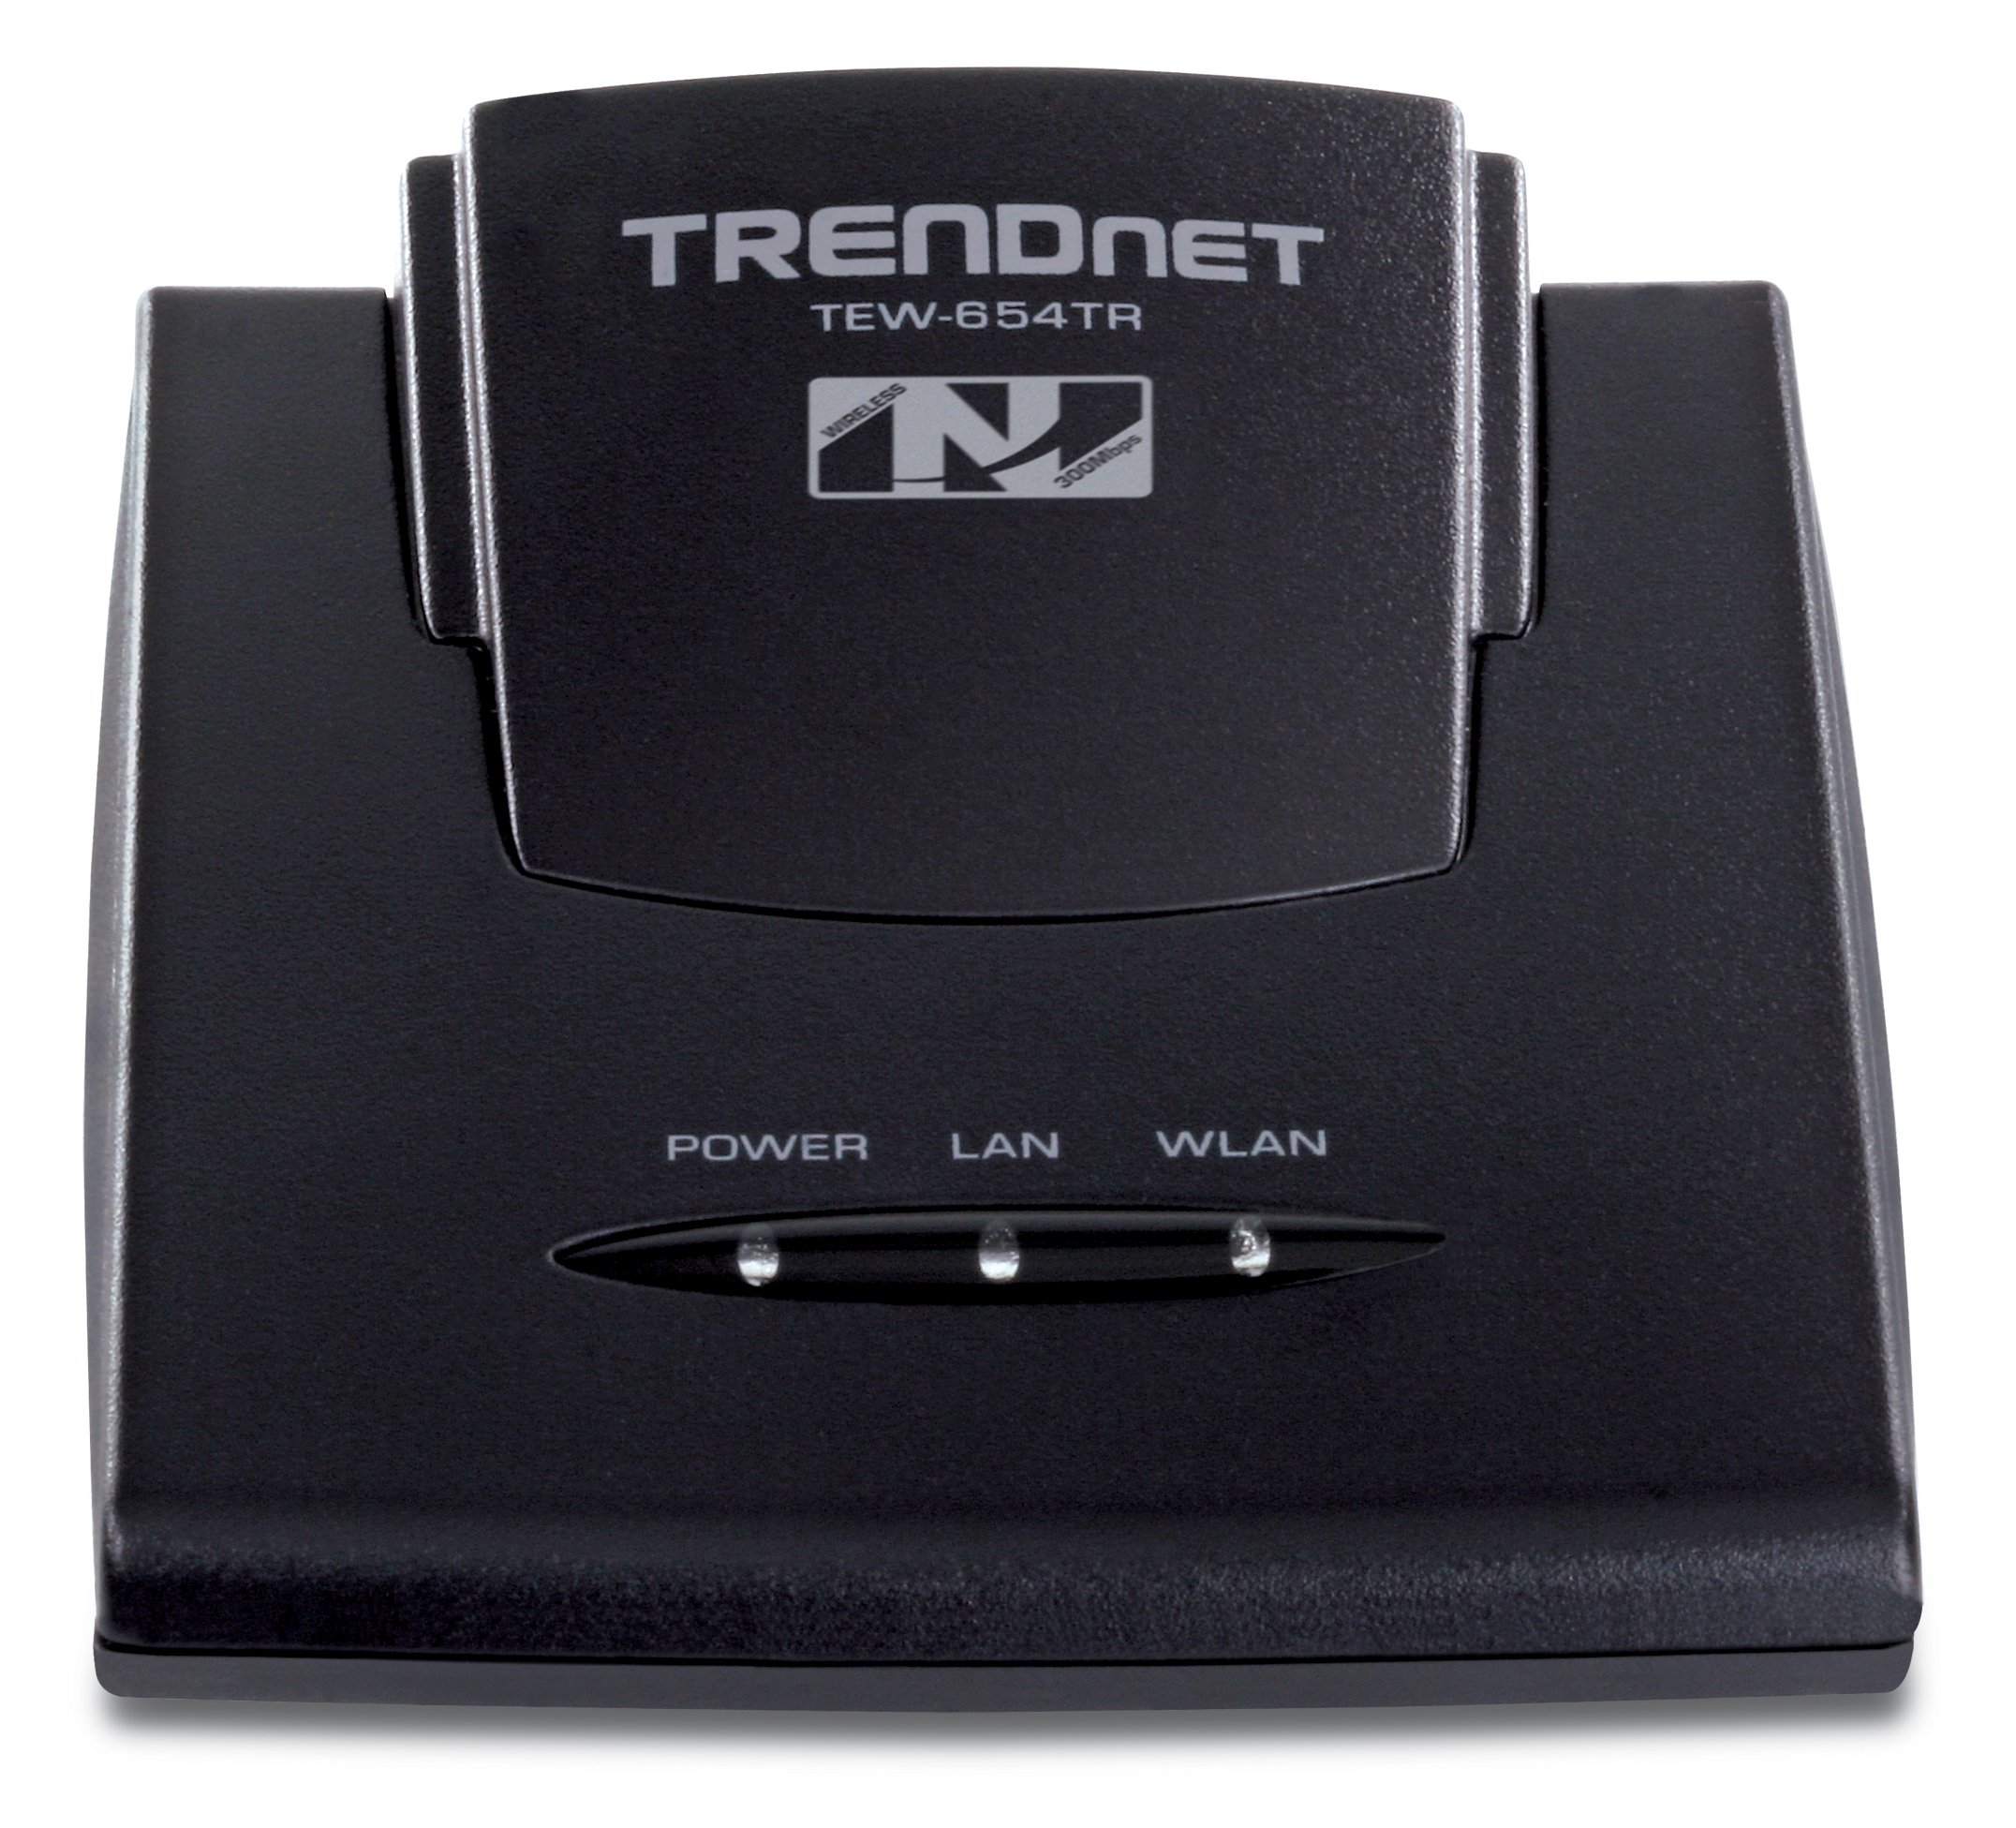 TRENDnet Wireless N 300 Mbps Travel Router Kit, TEW-654TR by TRENDnet (Image #2)